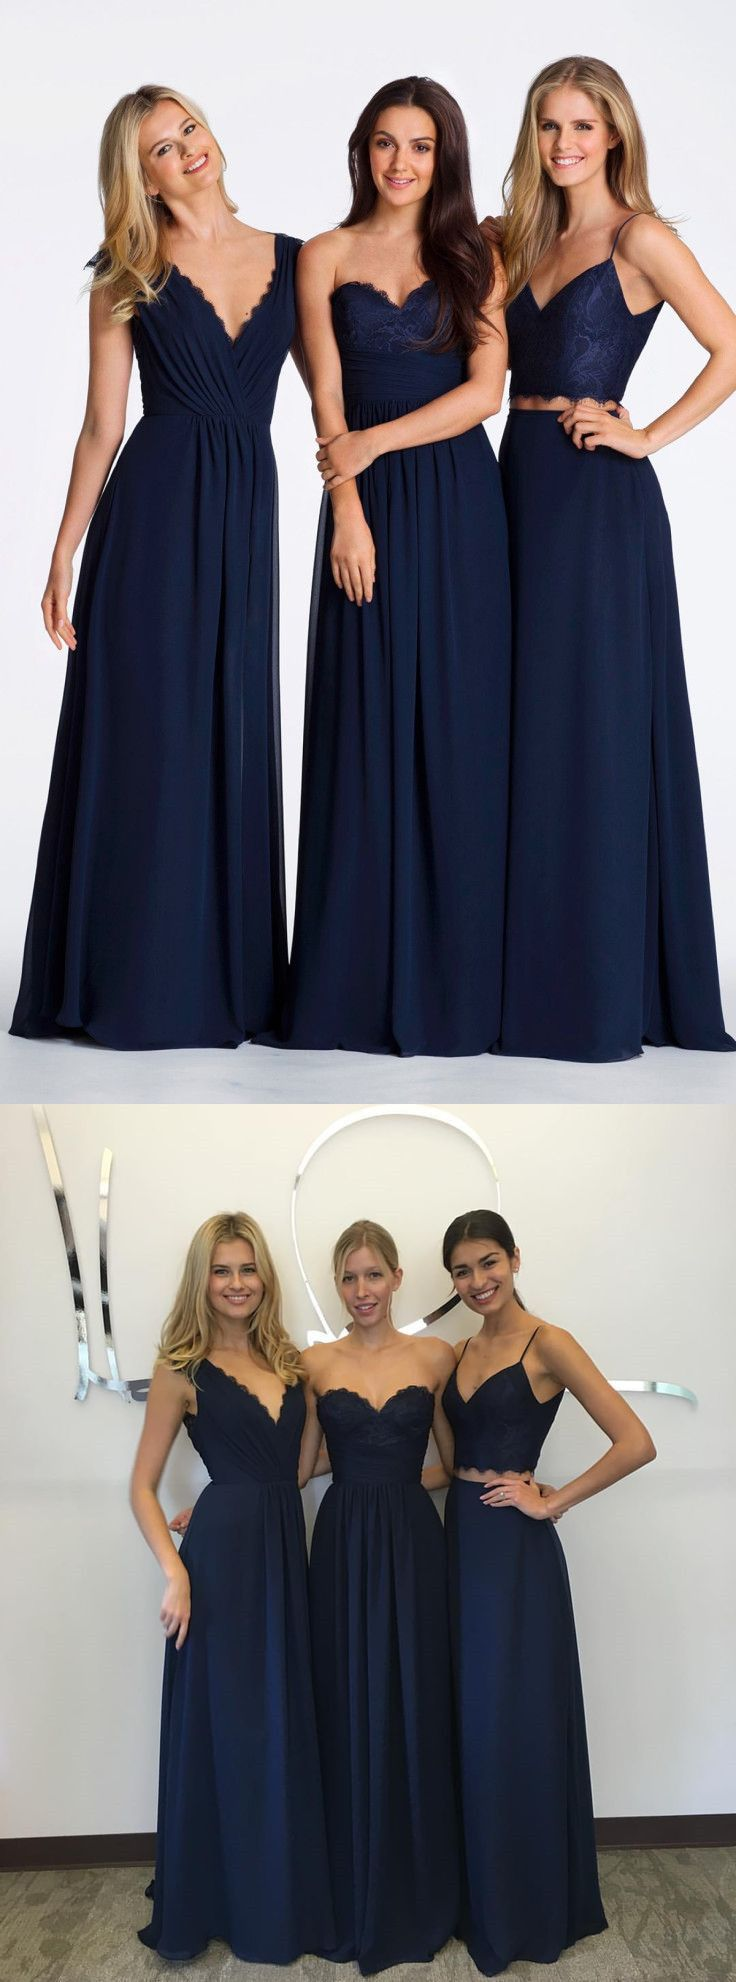 Best 20 navy bridesmaid dresses ideas on pinterestno signup long bridesmaid dresses navy blue bridesmaid dresses 2016 bridesmaid dresses ombrellifo Images